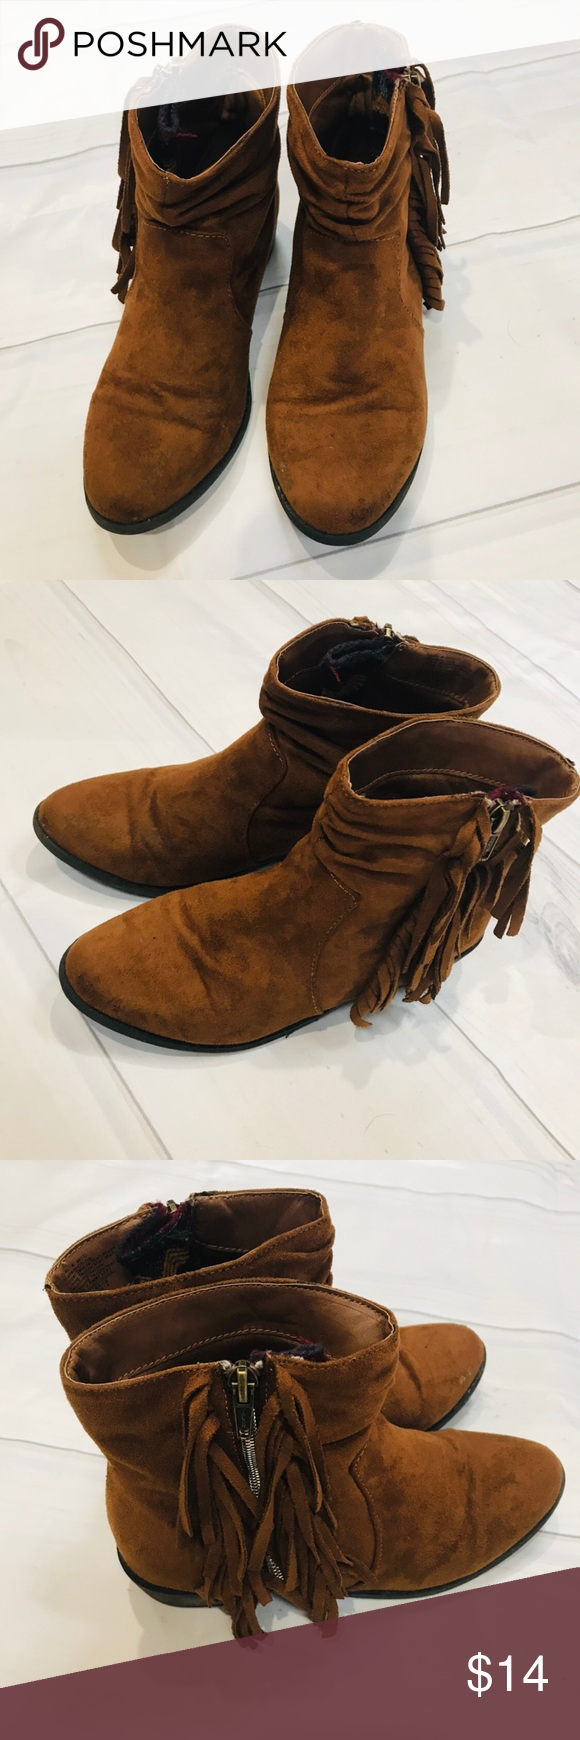 Mudd Girls Brown Ankle Boots Size 4